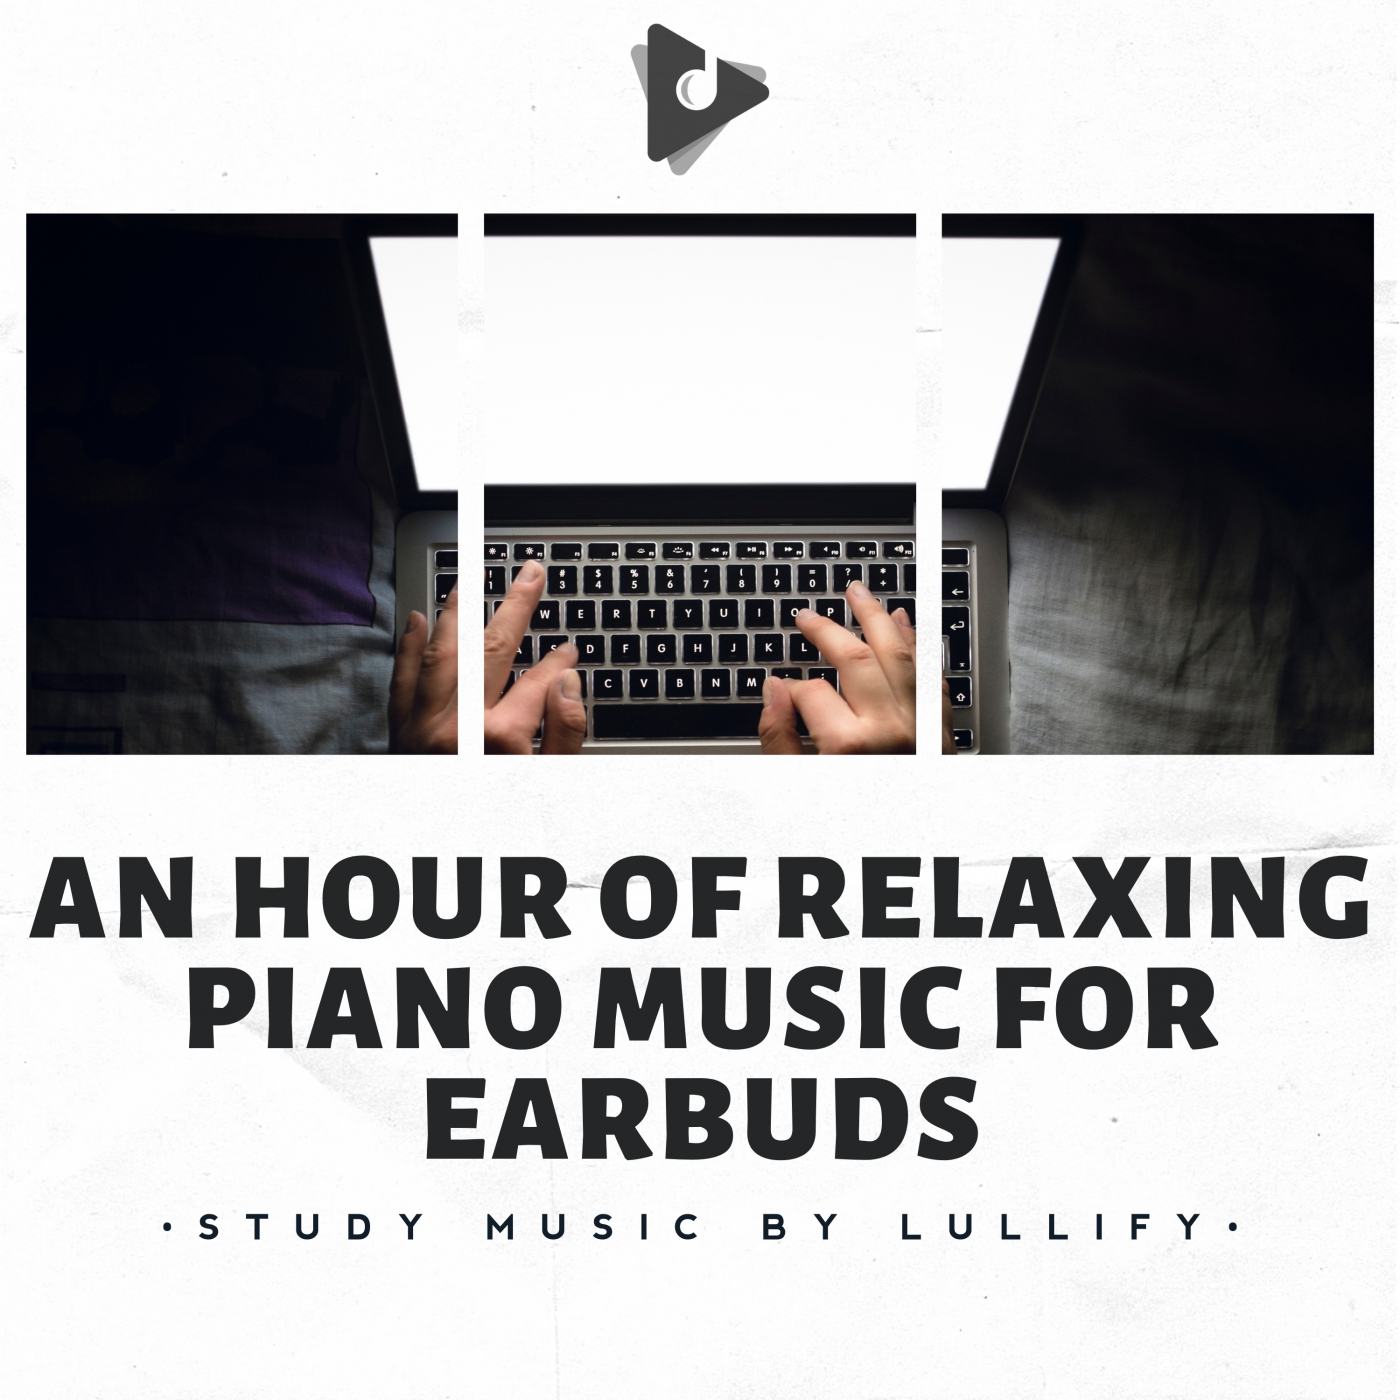 An Hour of Relaxing Piano Music for Earbuds